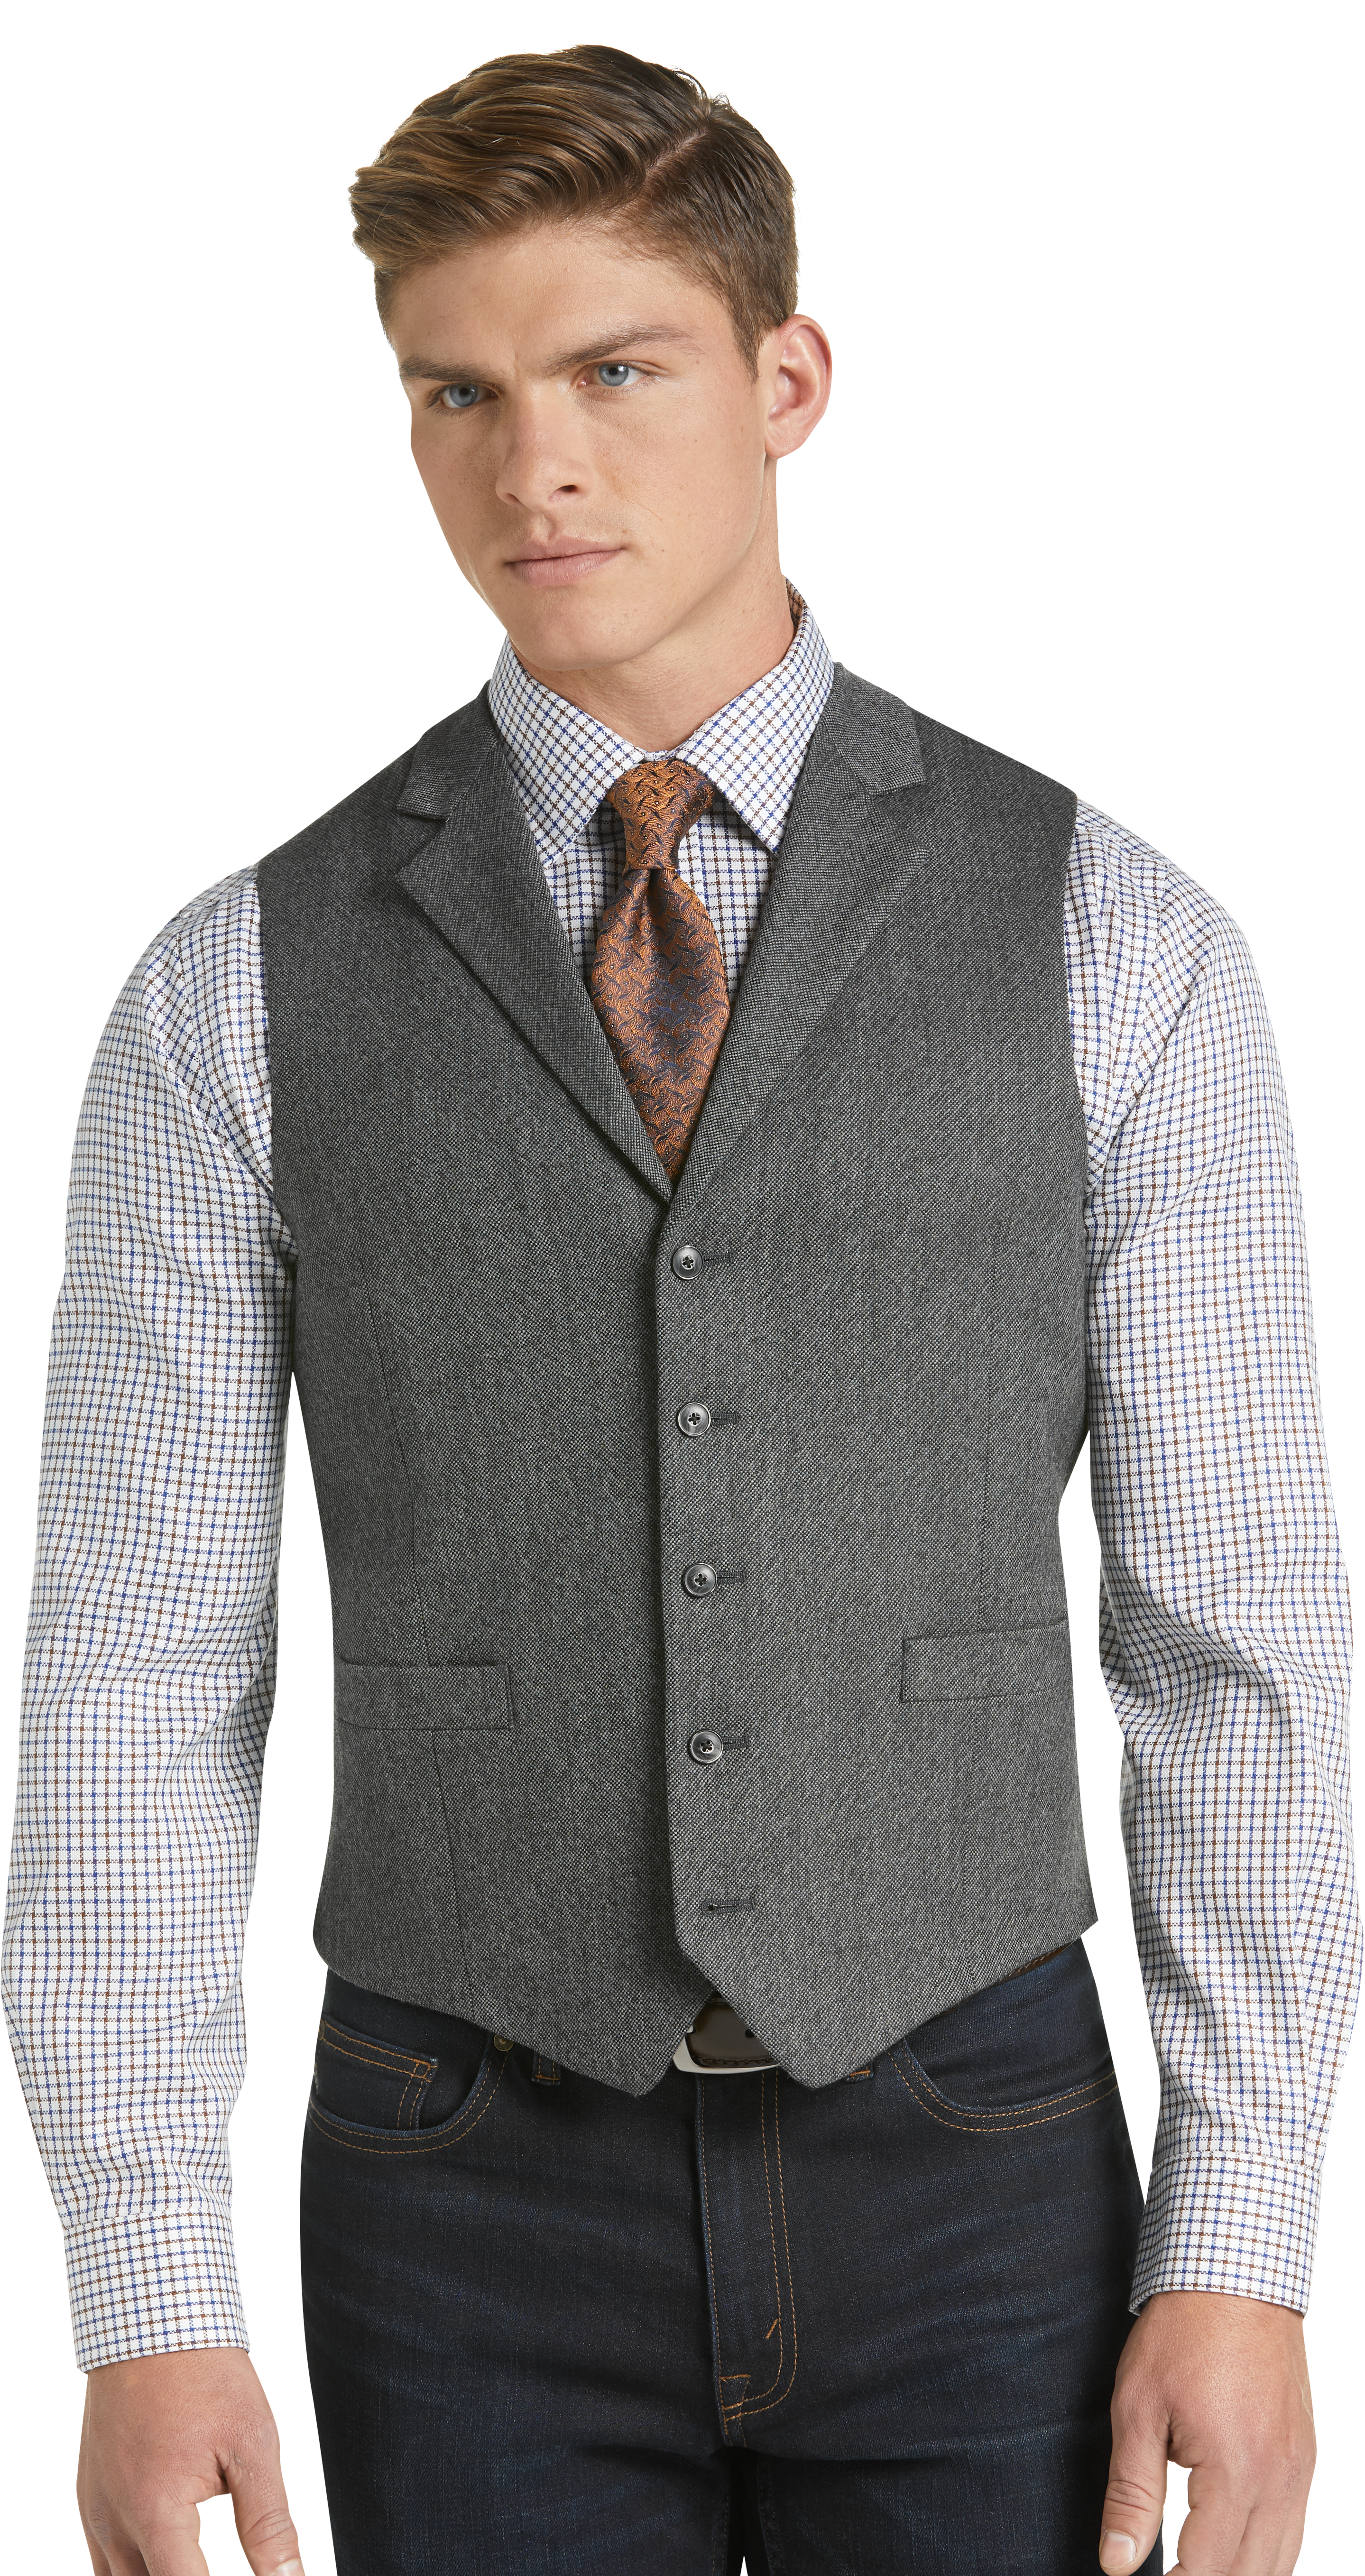 b69f2c01 1905 Collection Tailored Fit Donegal Vest - Big & Tall CLEARANCE